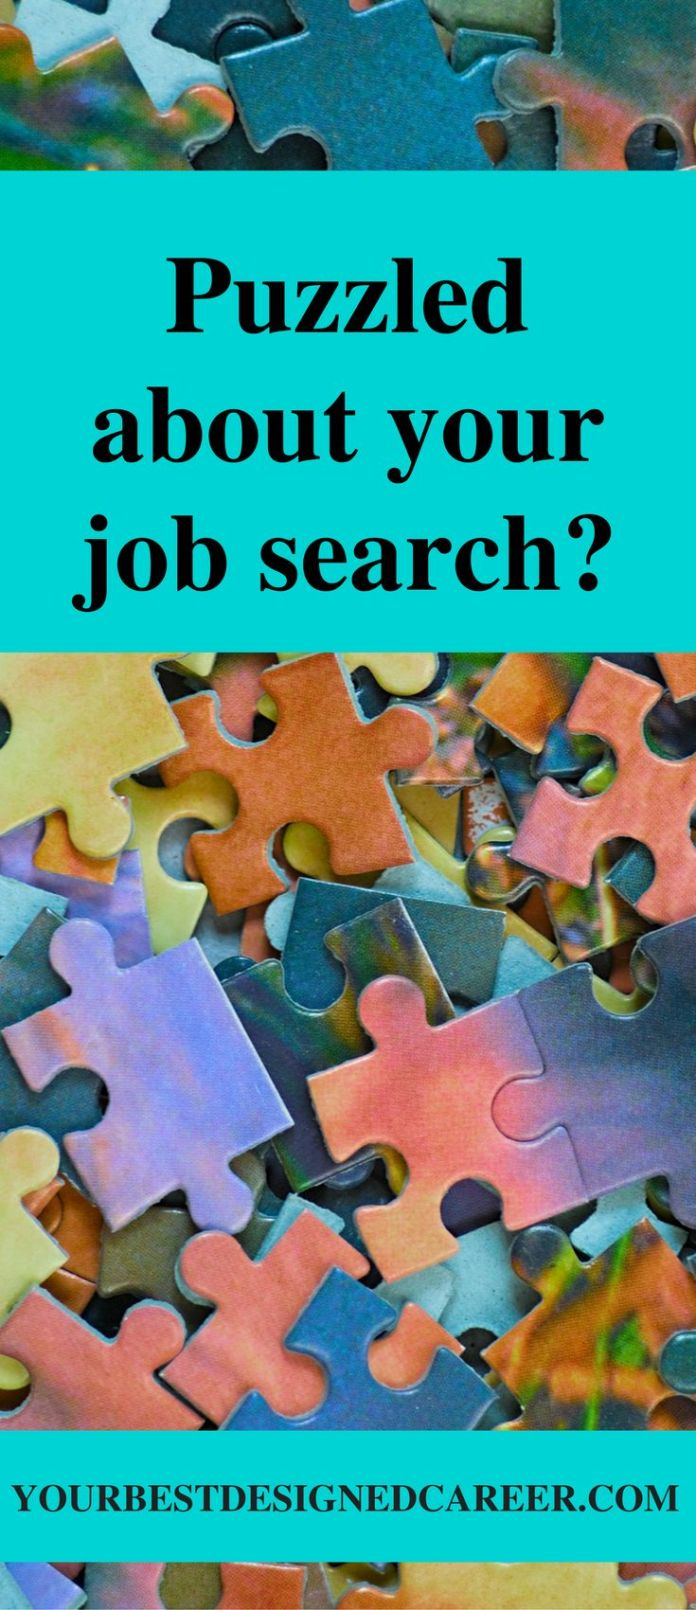 career infographic job search resume tips resume preparation